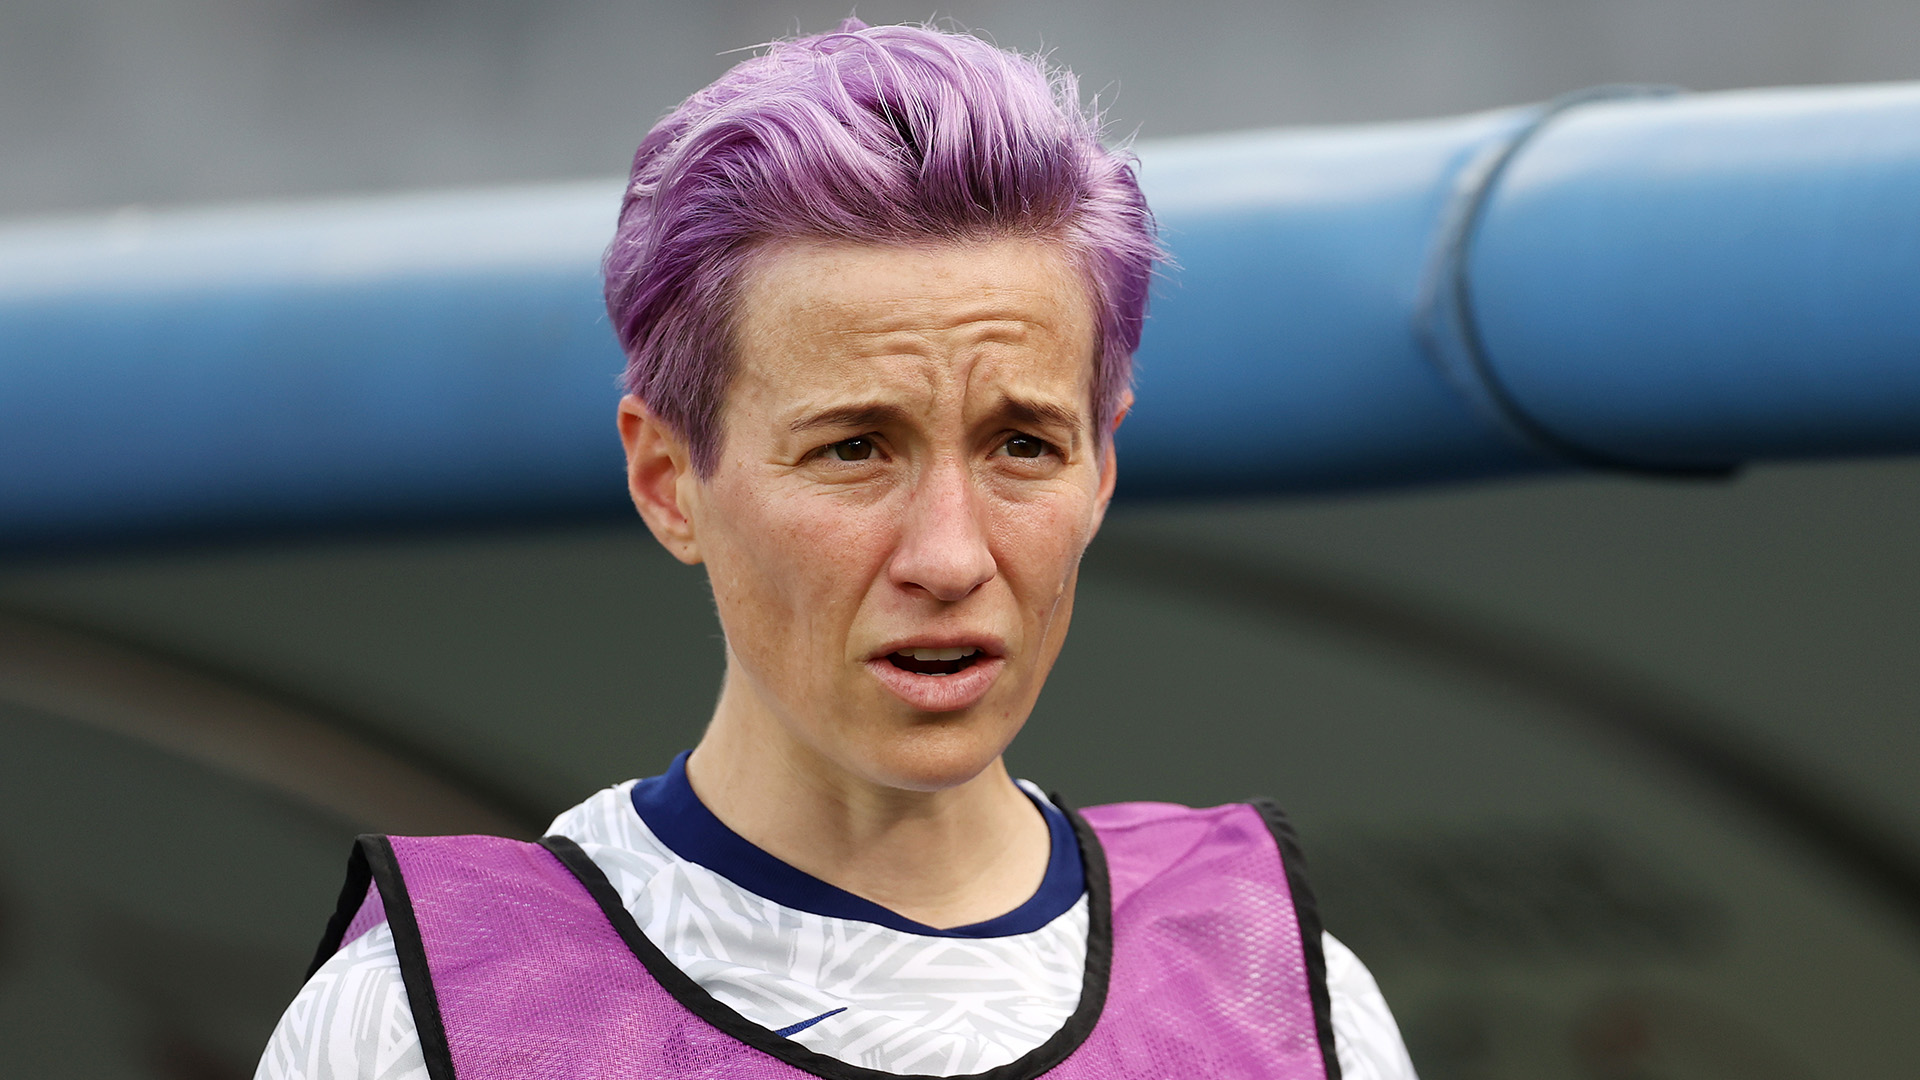 'We got our asses kicked, didn't we?' - Rapinoe reacts to USWNT Olympics defeat to Sweden